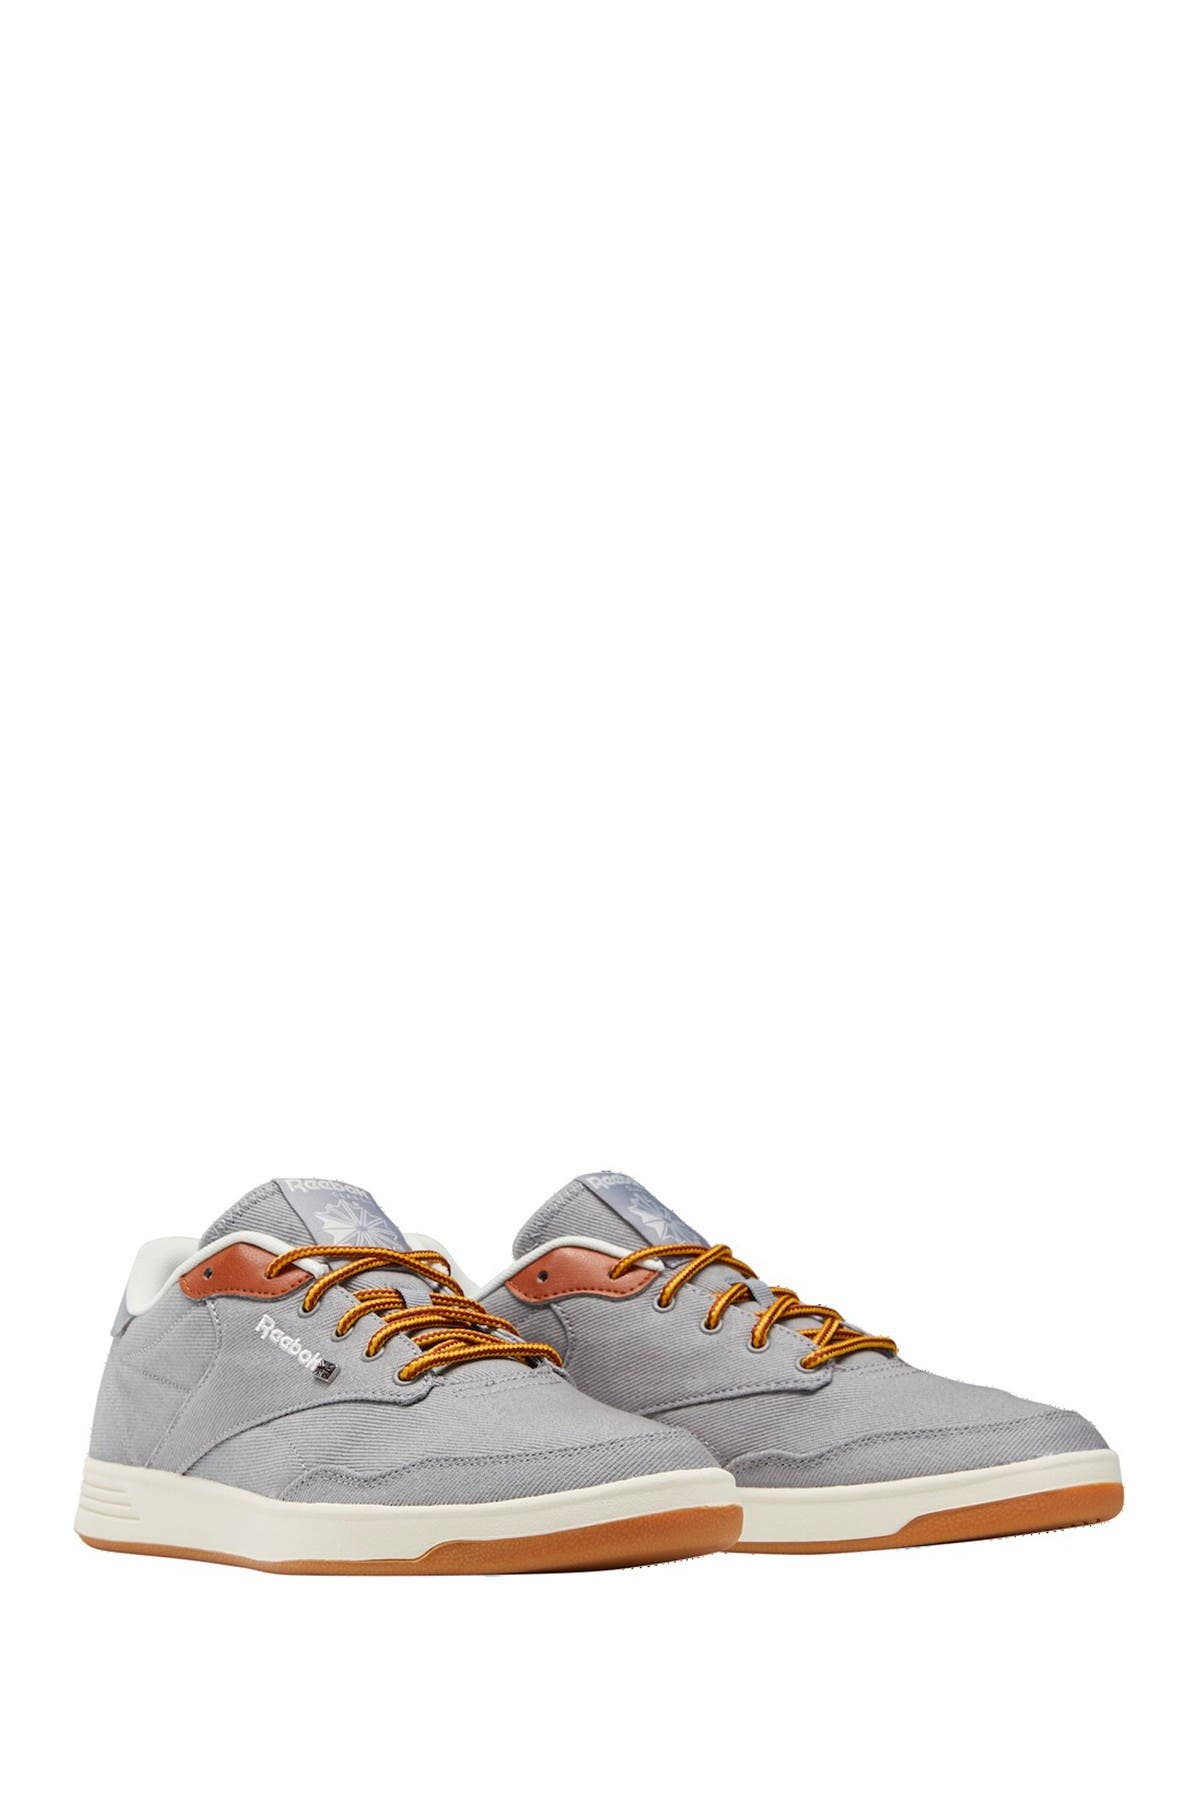 Image of Reebok Club Memt Canvas Sneaker